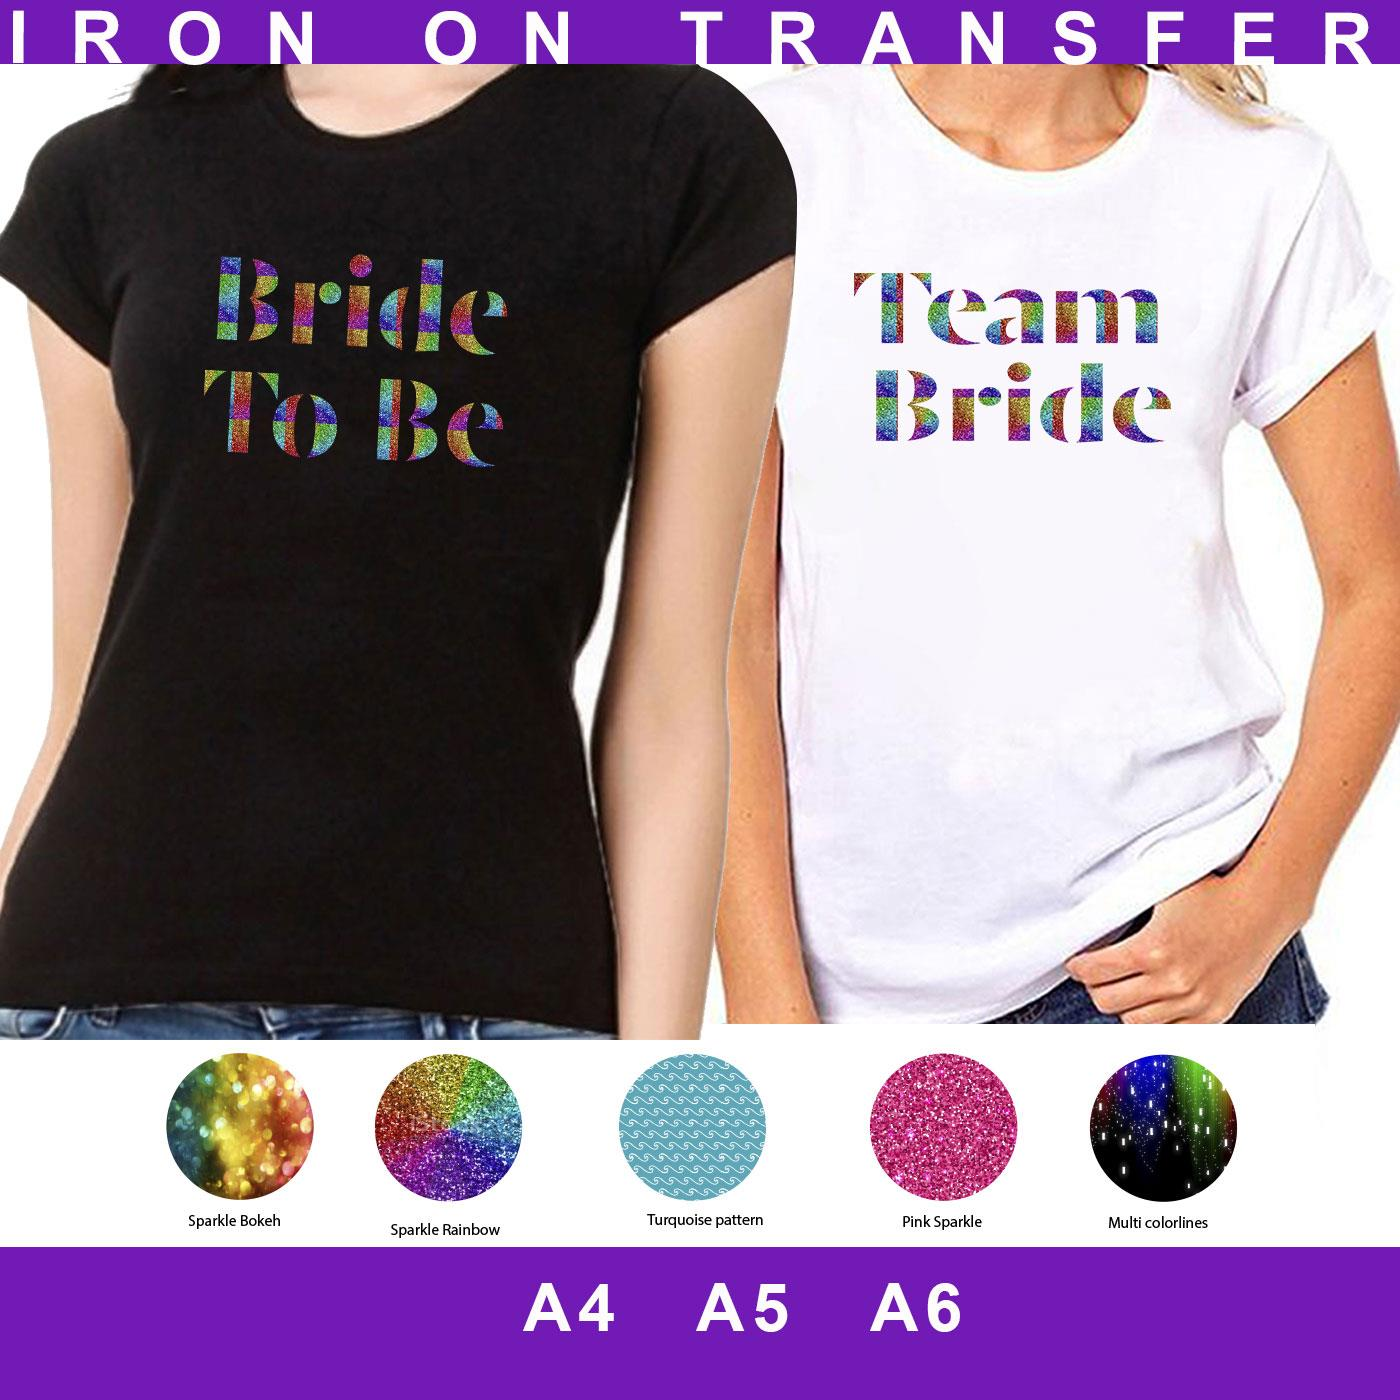 A5 TEAM BRIDE HEN PARTY NIGHT TRIBE ROSE GOLD IRON ON VINYL T SHIRT TRANSFER